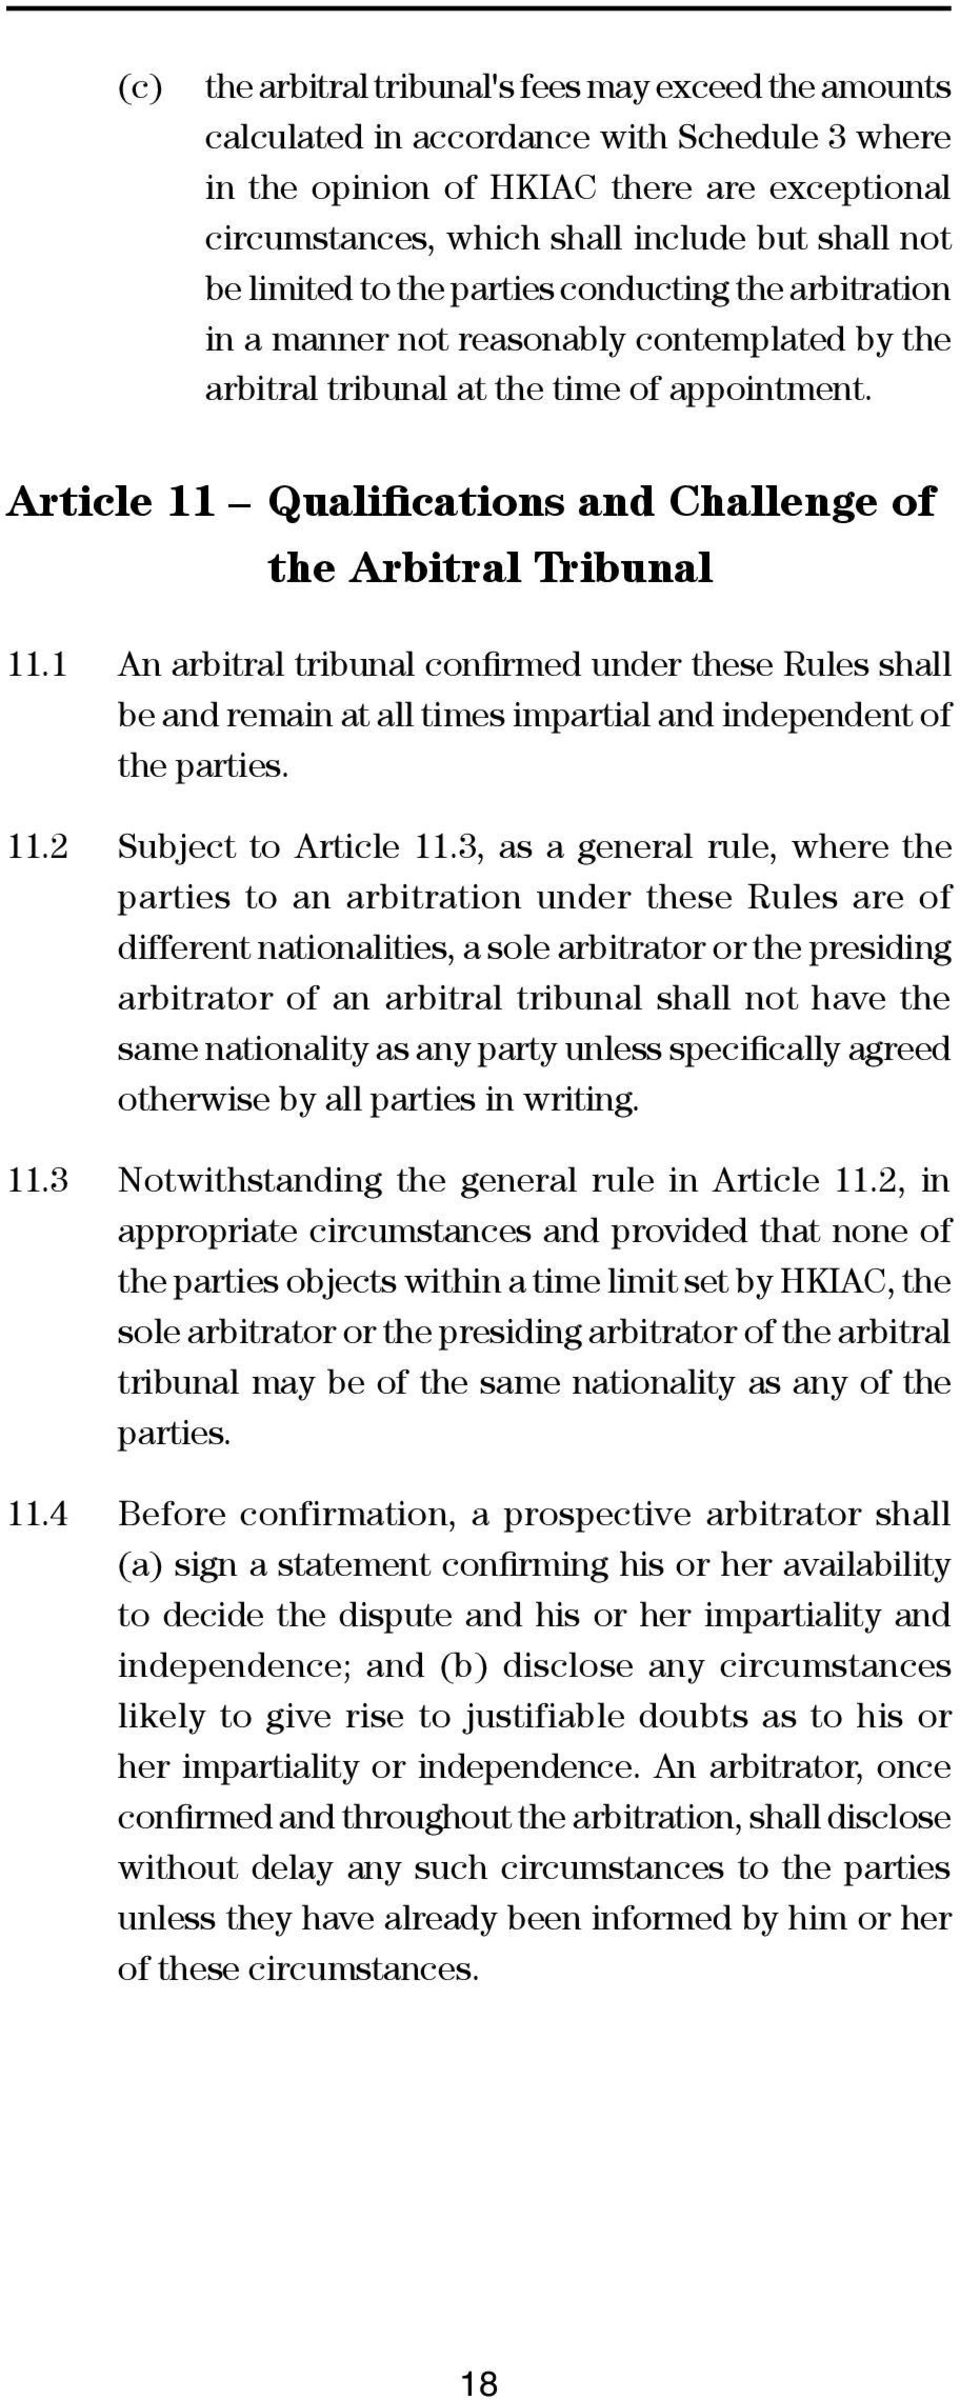 Article 11 Qualifications and Challenge of the Arbitral Tribunal 11.1 An arbitral tribunal confirmed under these Rules shall be and remain at all times impartial and independent of the parties. 11.2 Subject to Article 11.